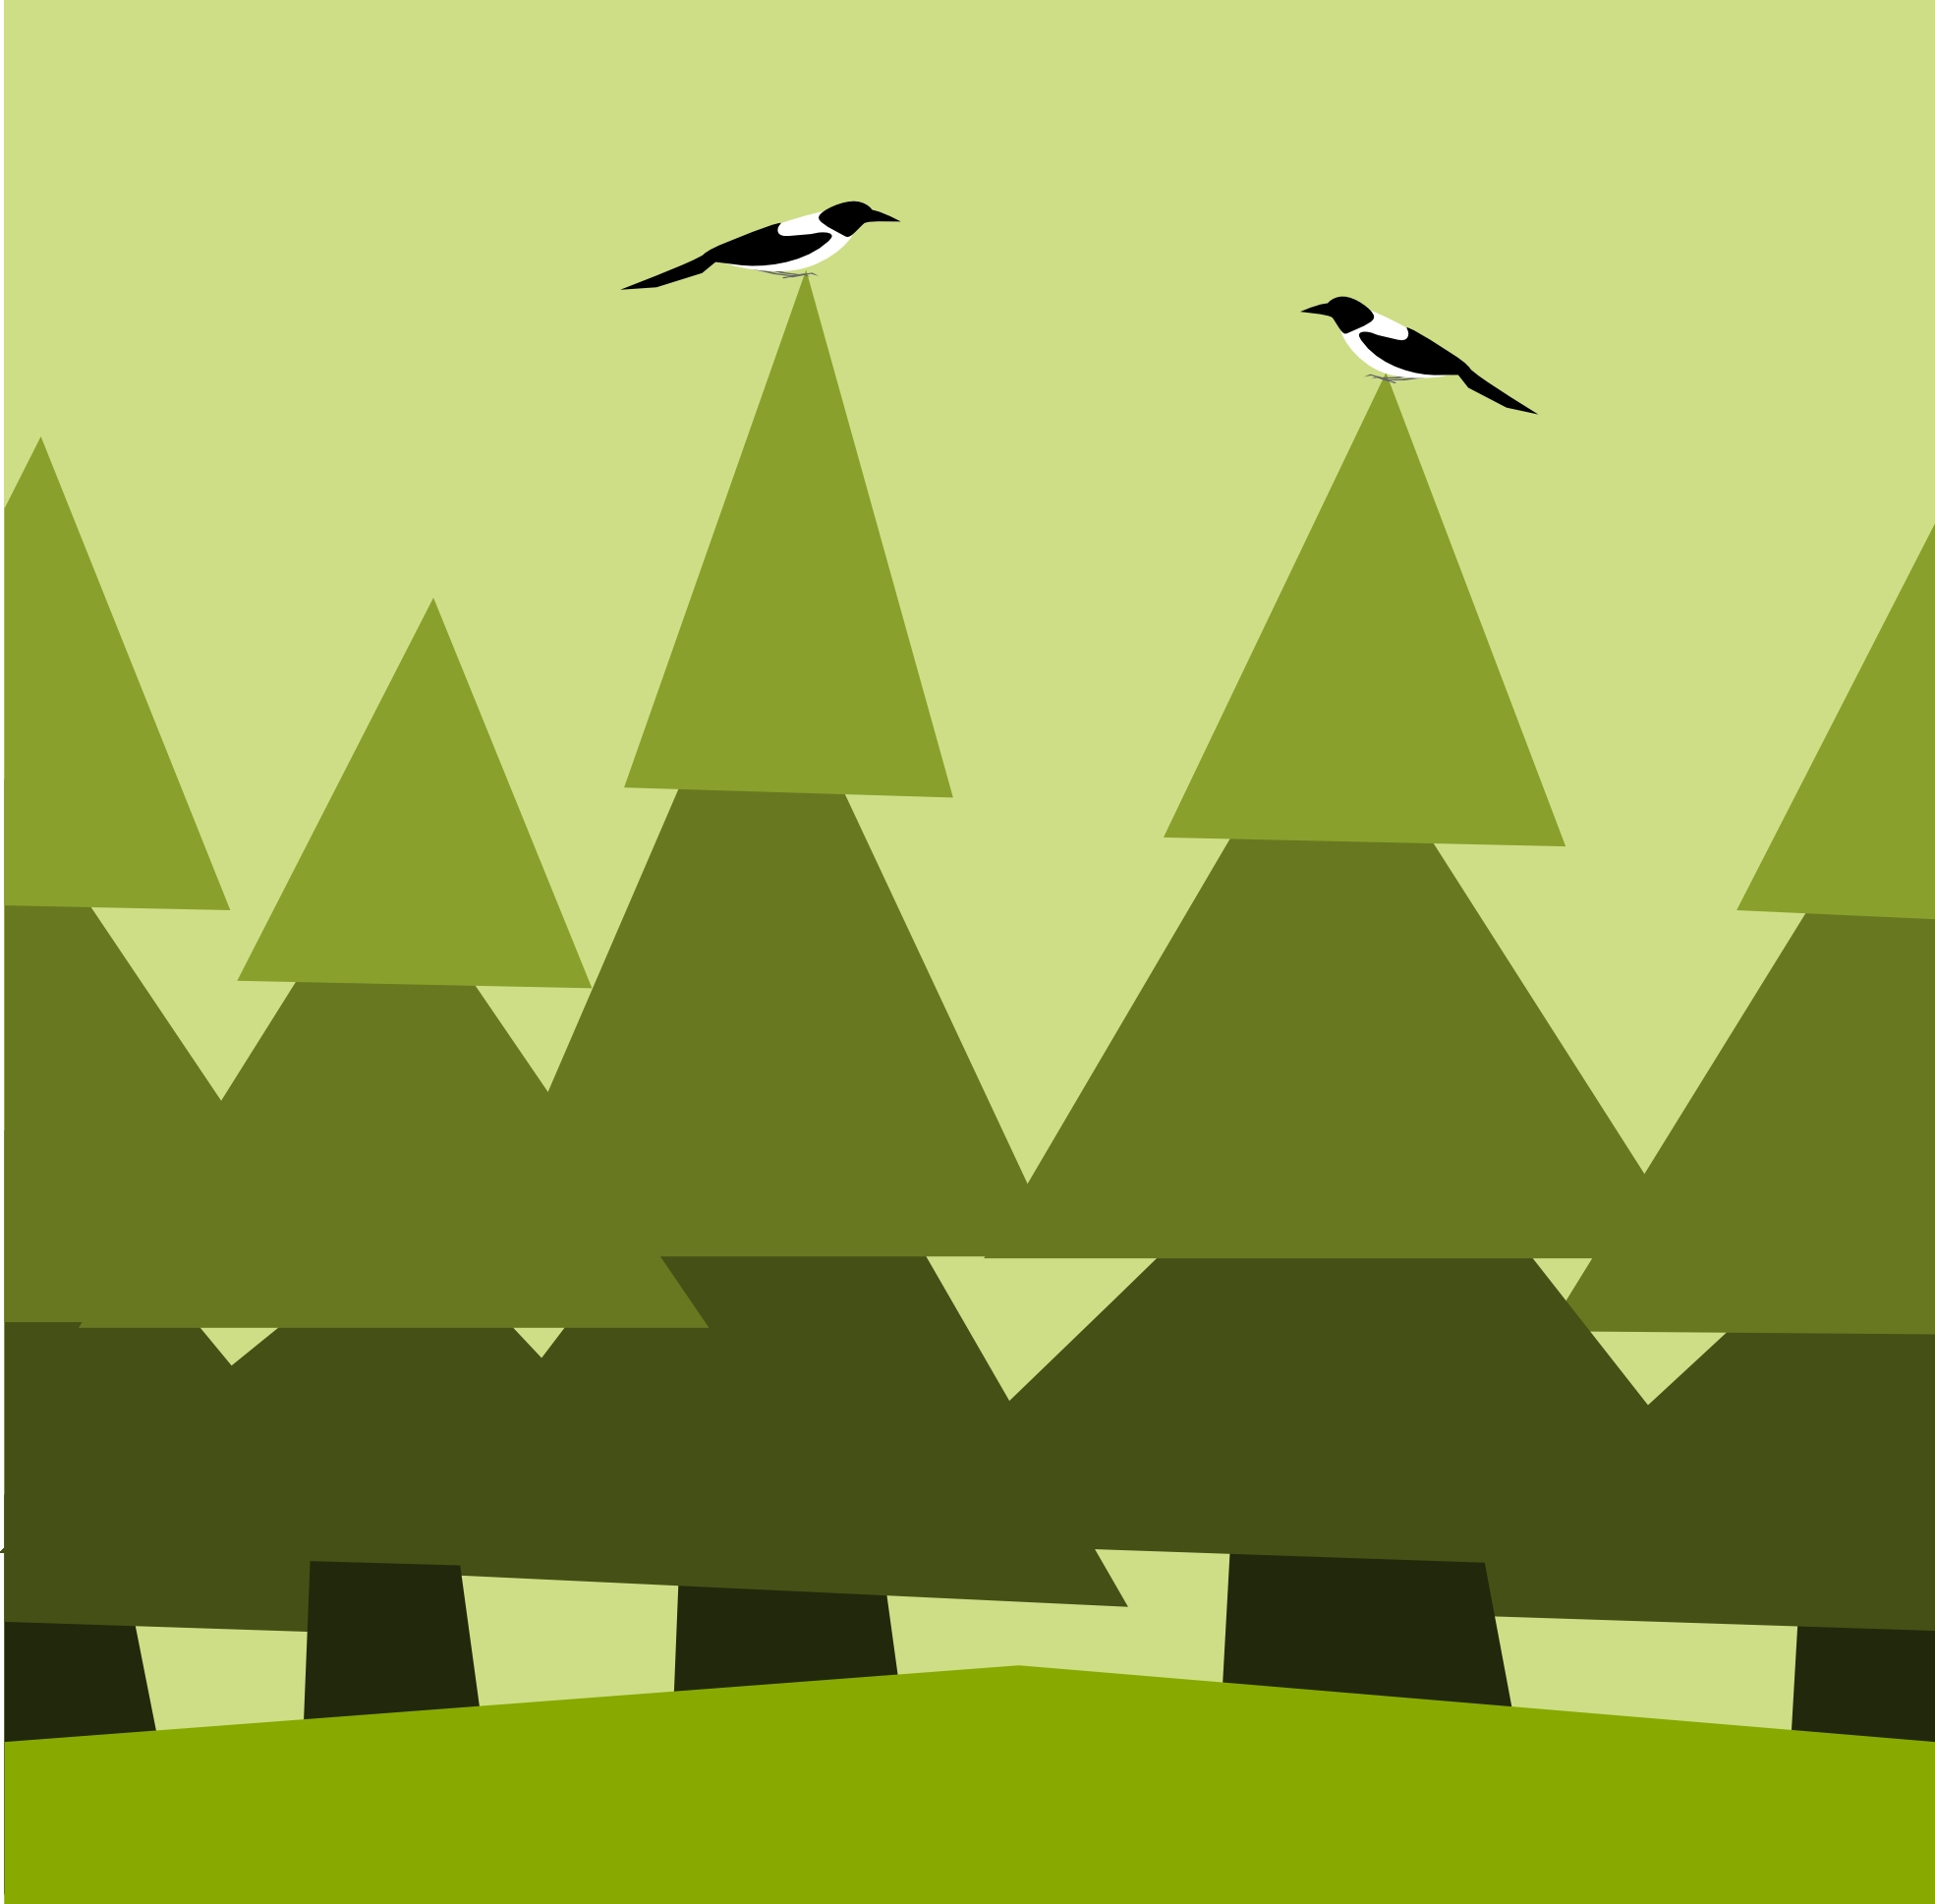 Woods clipart. Best of collection digital